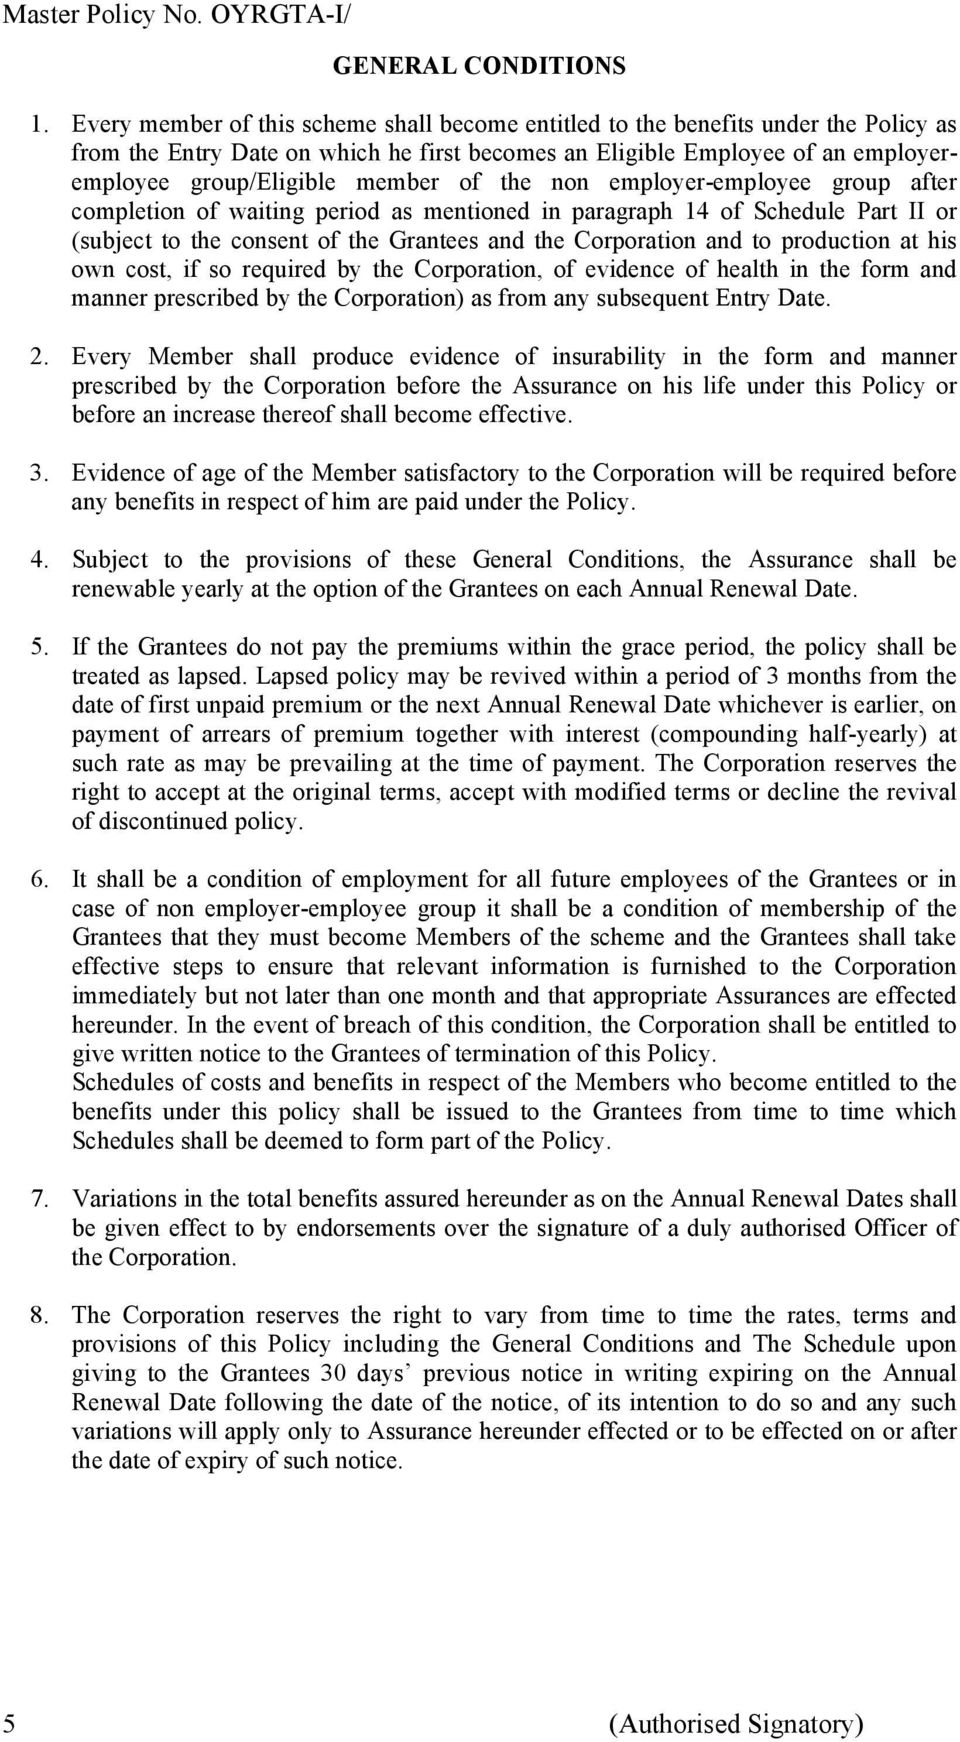 of the non employer-employee group after completion of waiting period as mentioned in paragraph 14 of Schedule Part II or (subject to the consent of the Grantees and the Corporation and to production